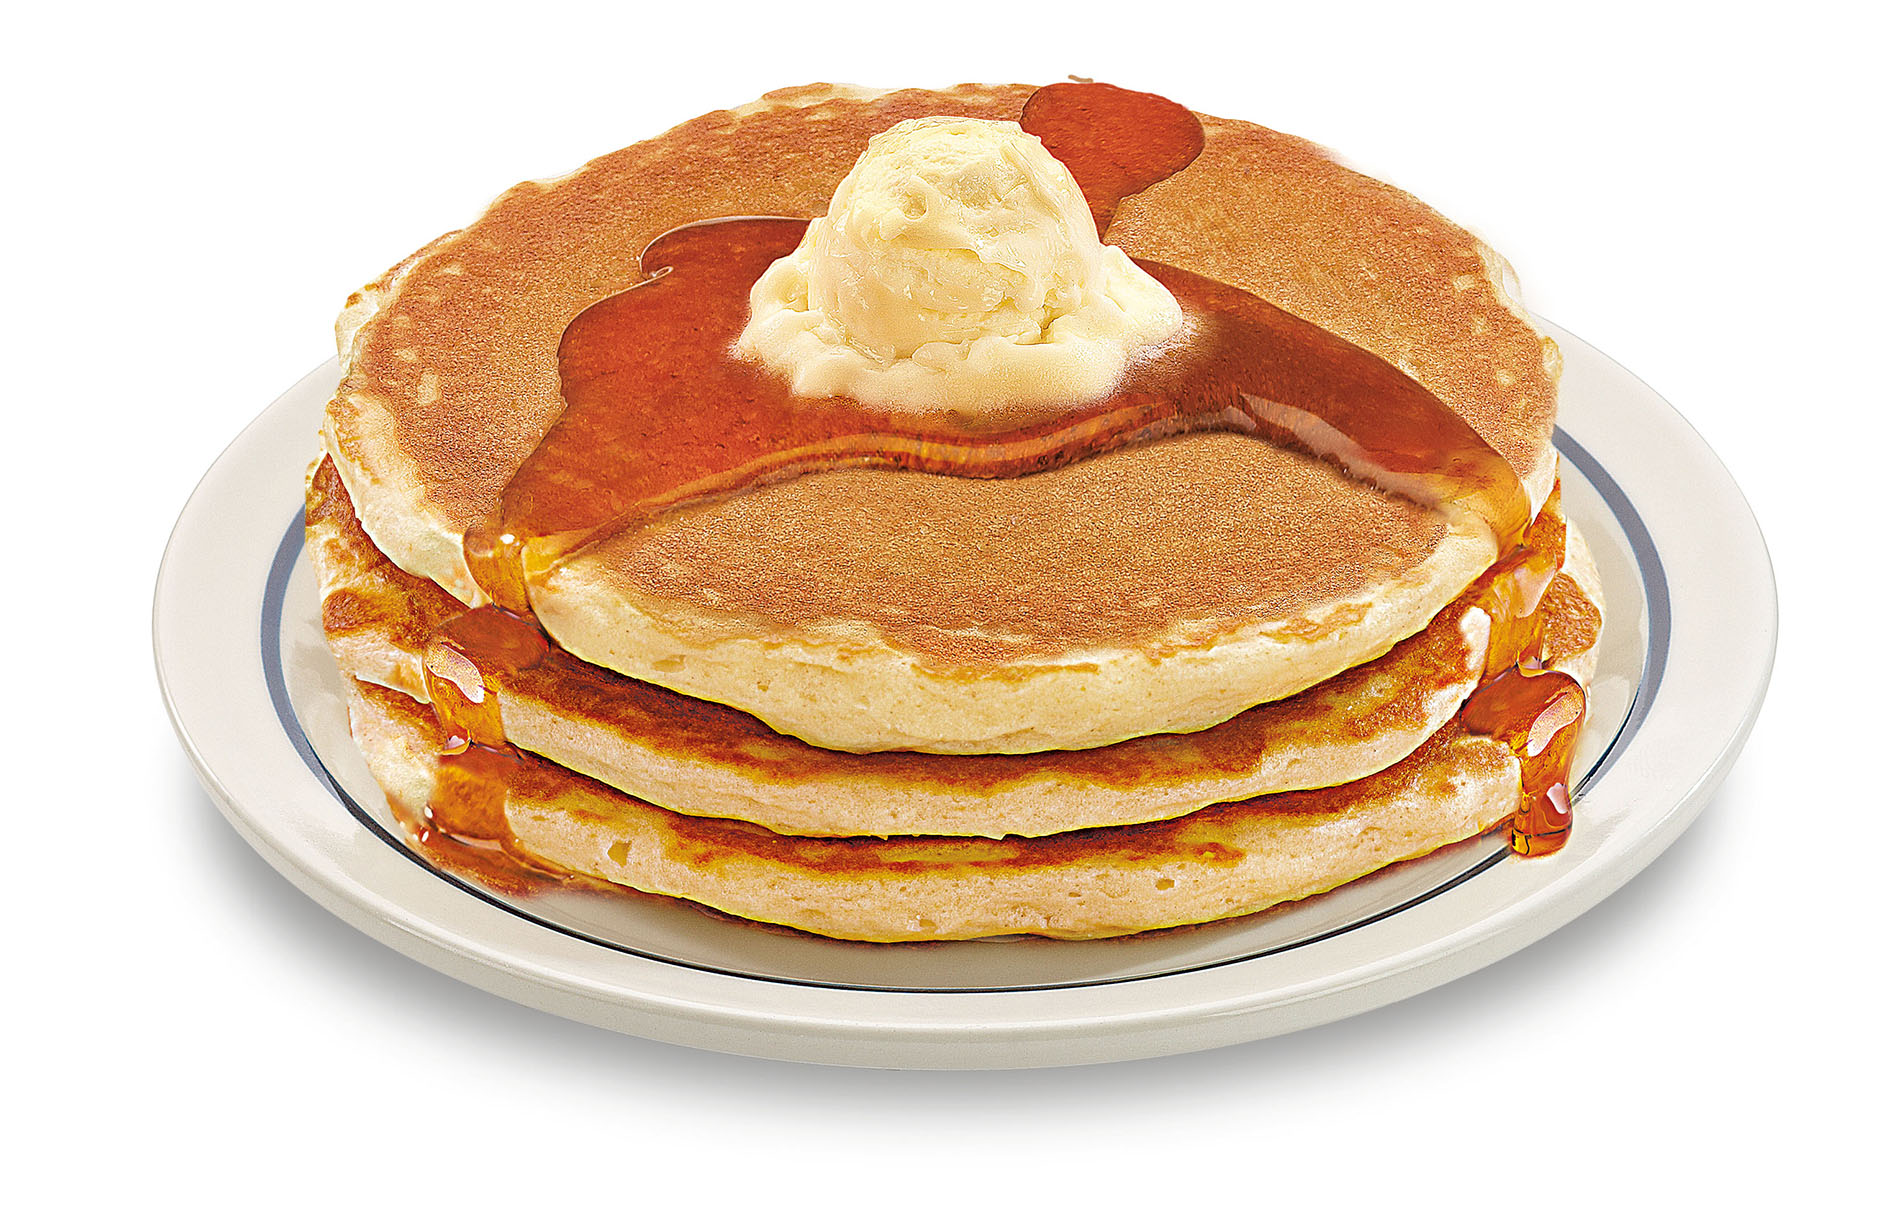 Ihop Restaurants Team Up With No Kid Hungry On Two Month